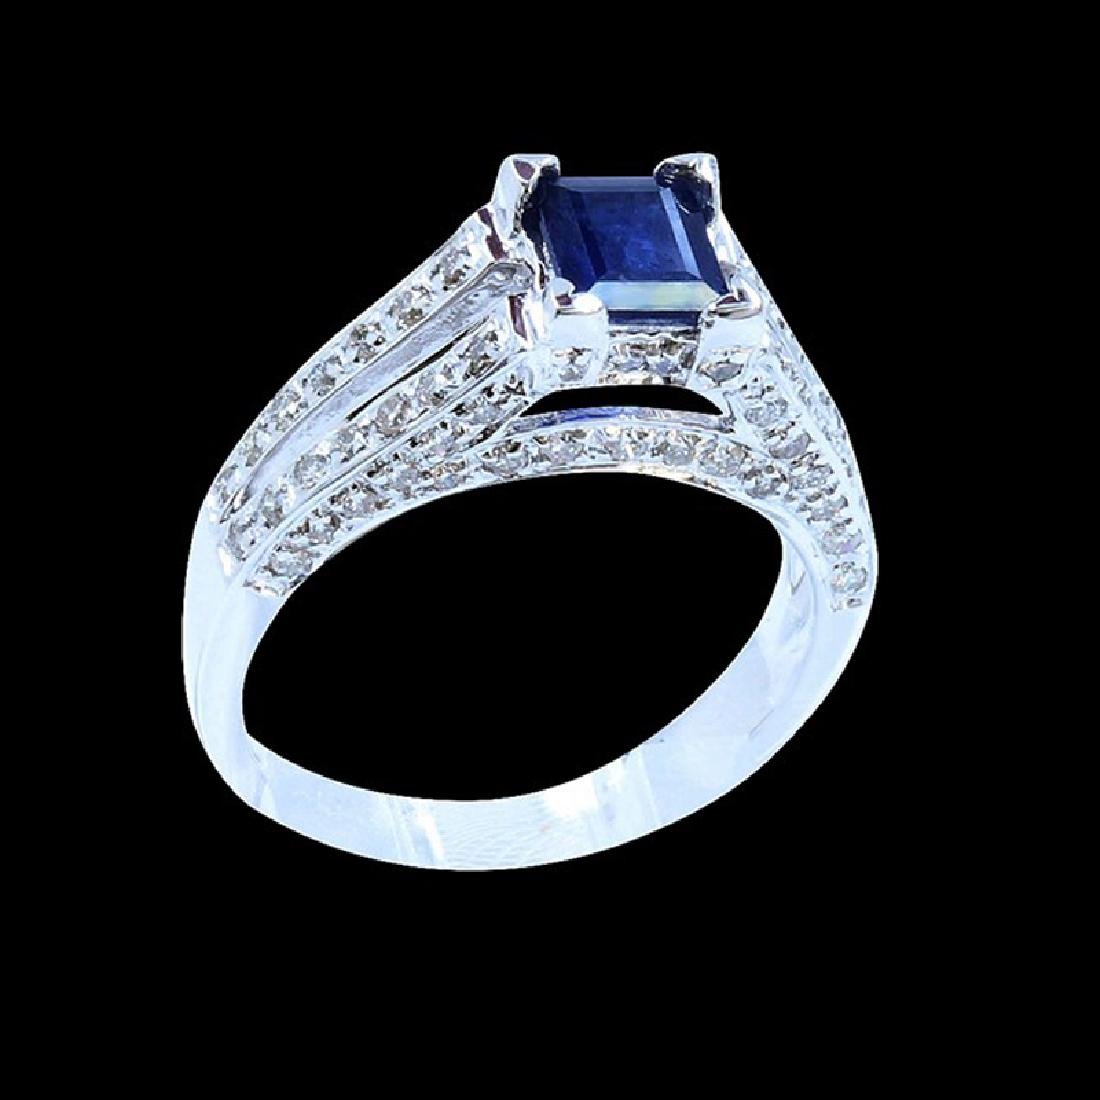 0.83CT NATURAL CEYLON BLUE SAPHIRE 14K WHITE GOLD RING